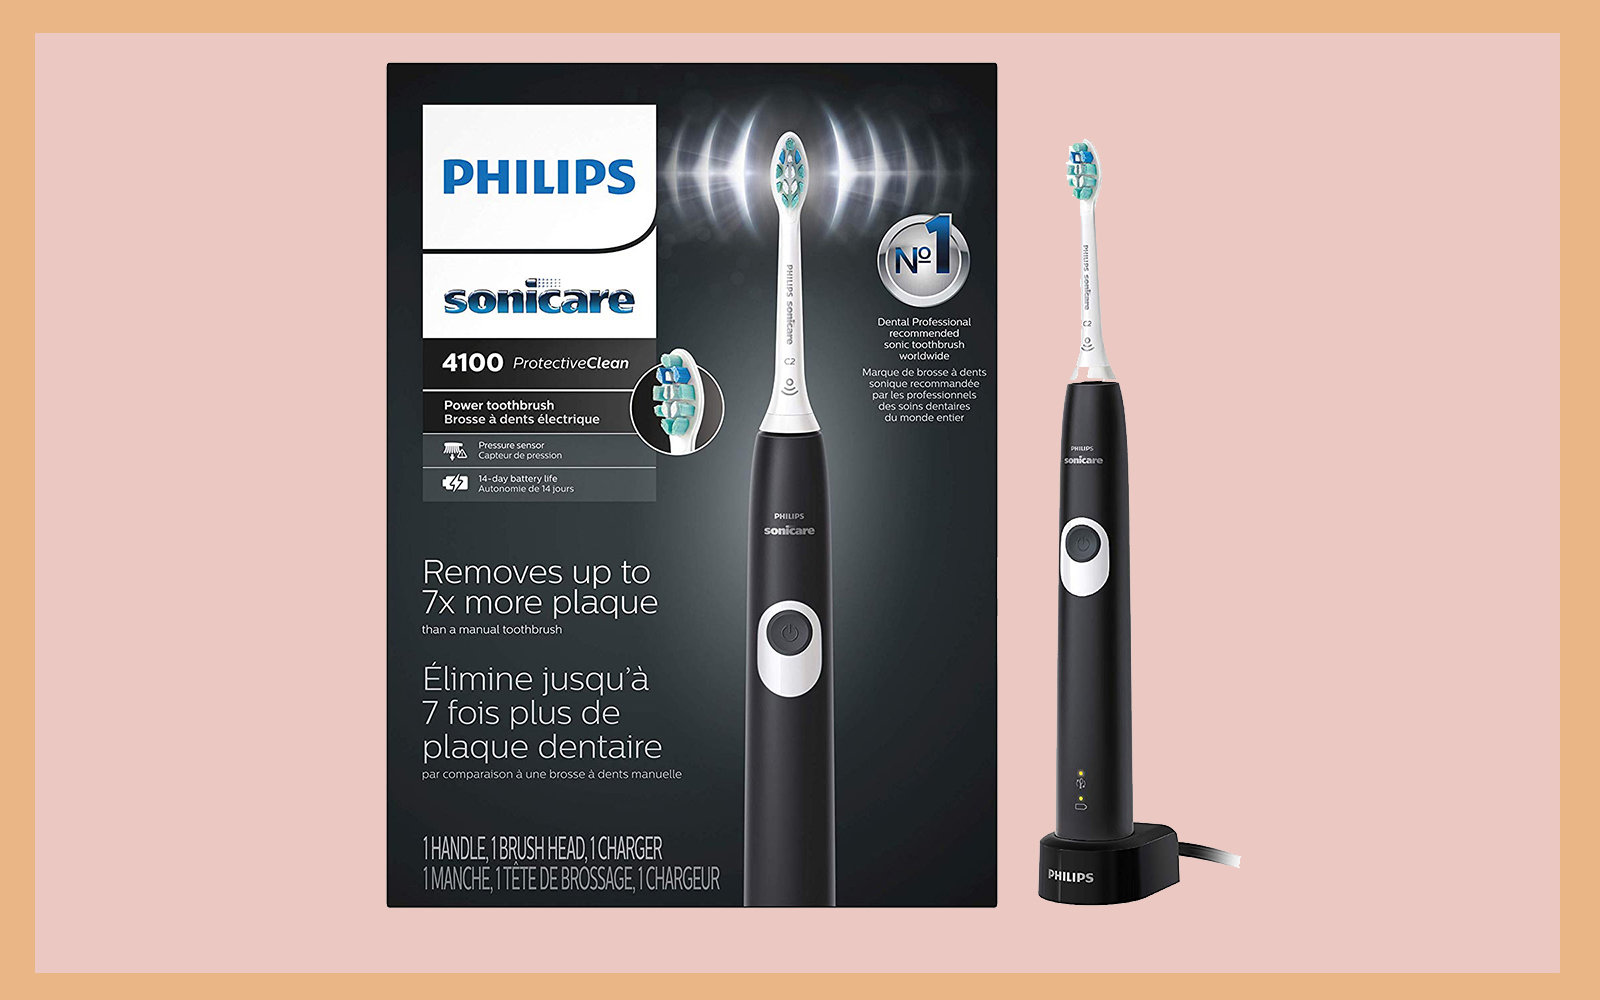 Philips Sonicare ProtectiveClean 4100 Rechargeable Electric Toothbrush